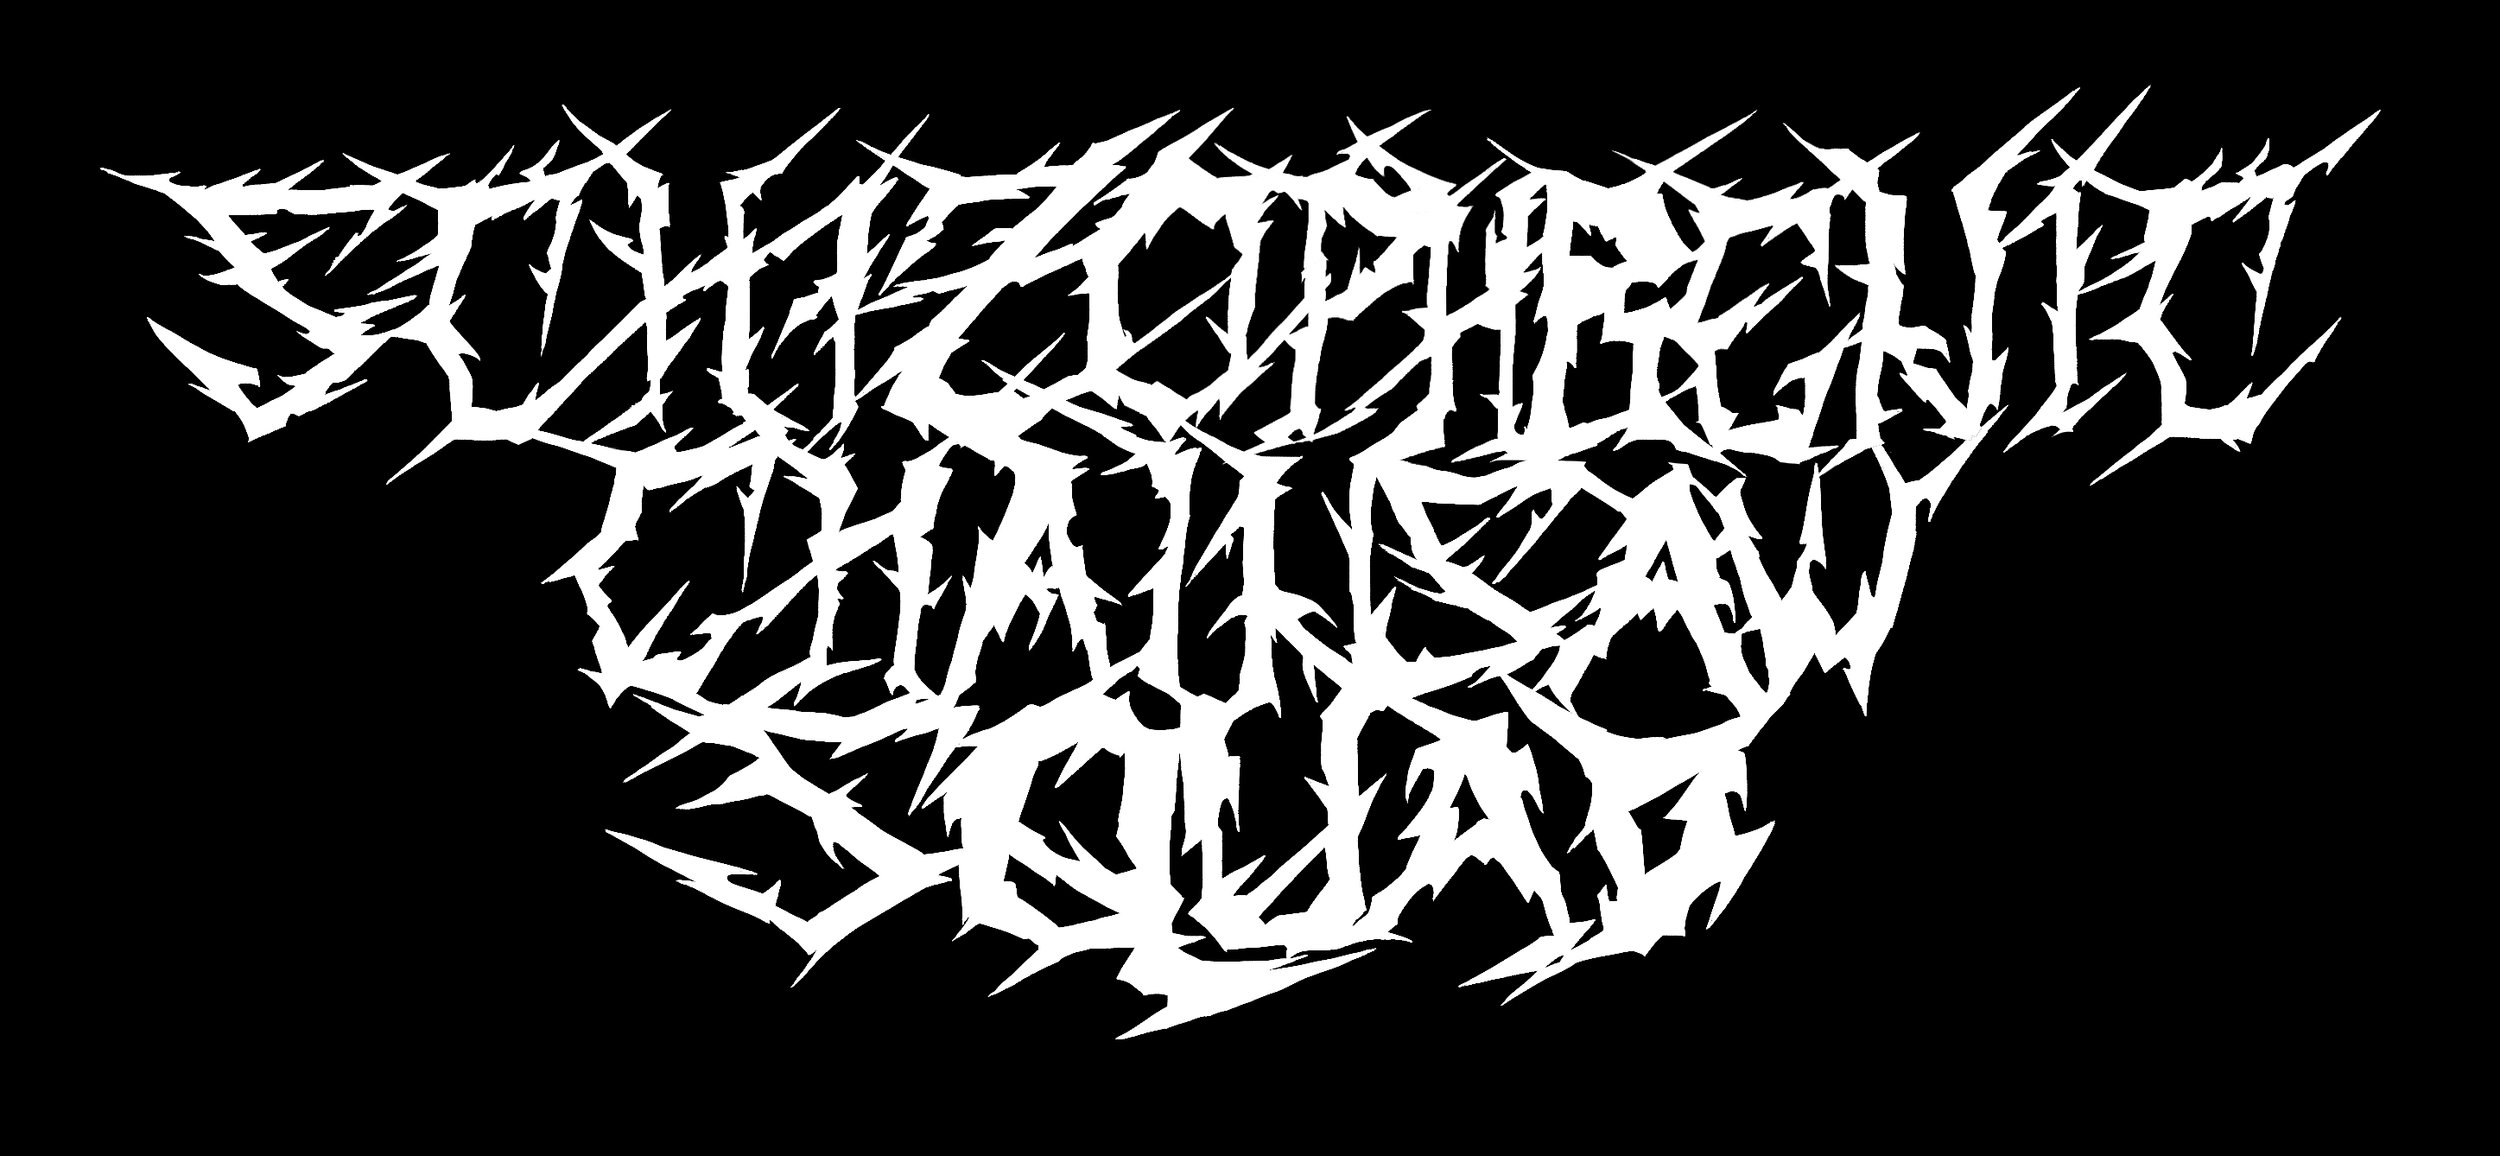 Logo for the death metal band Schizophrenic Chainsaw Squad.